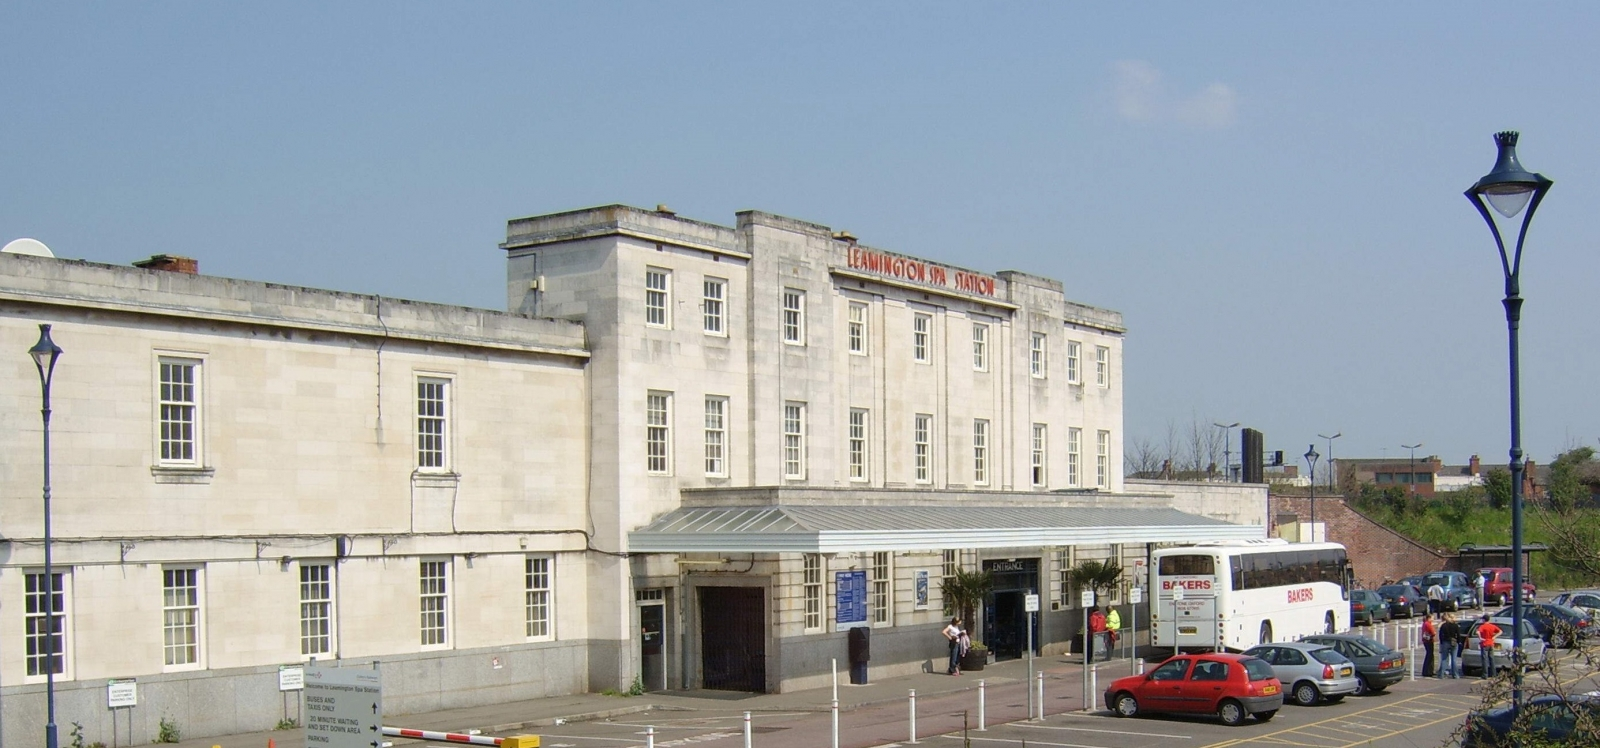 Leamington Spa is reputed to be one of the most haunted railway stations in Britain.